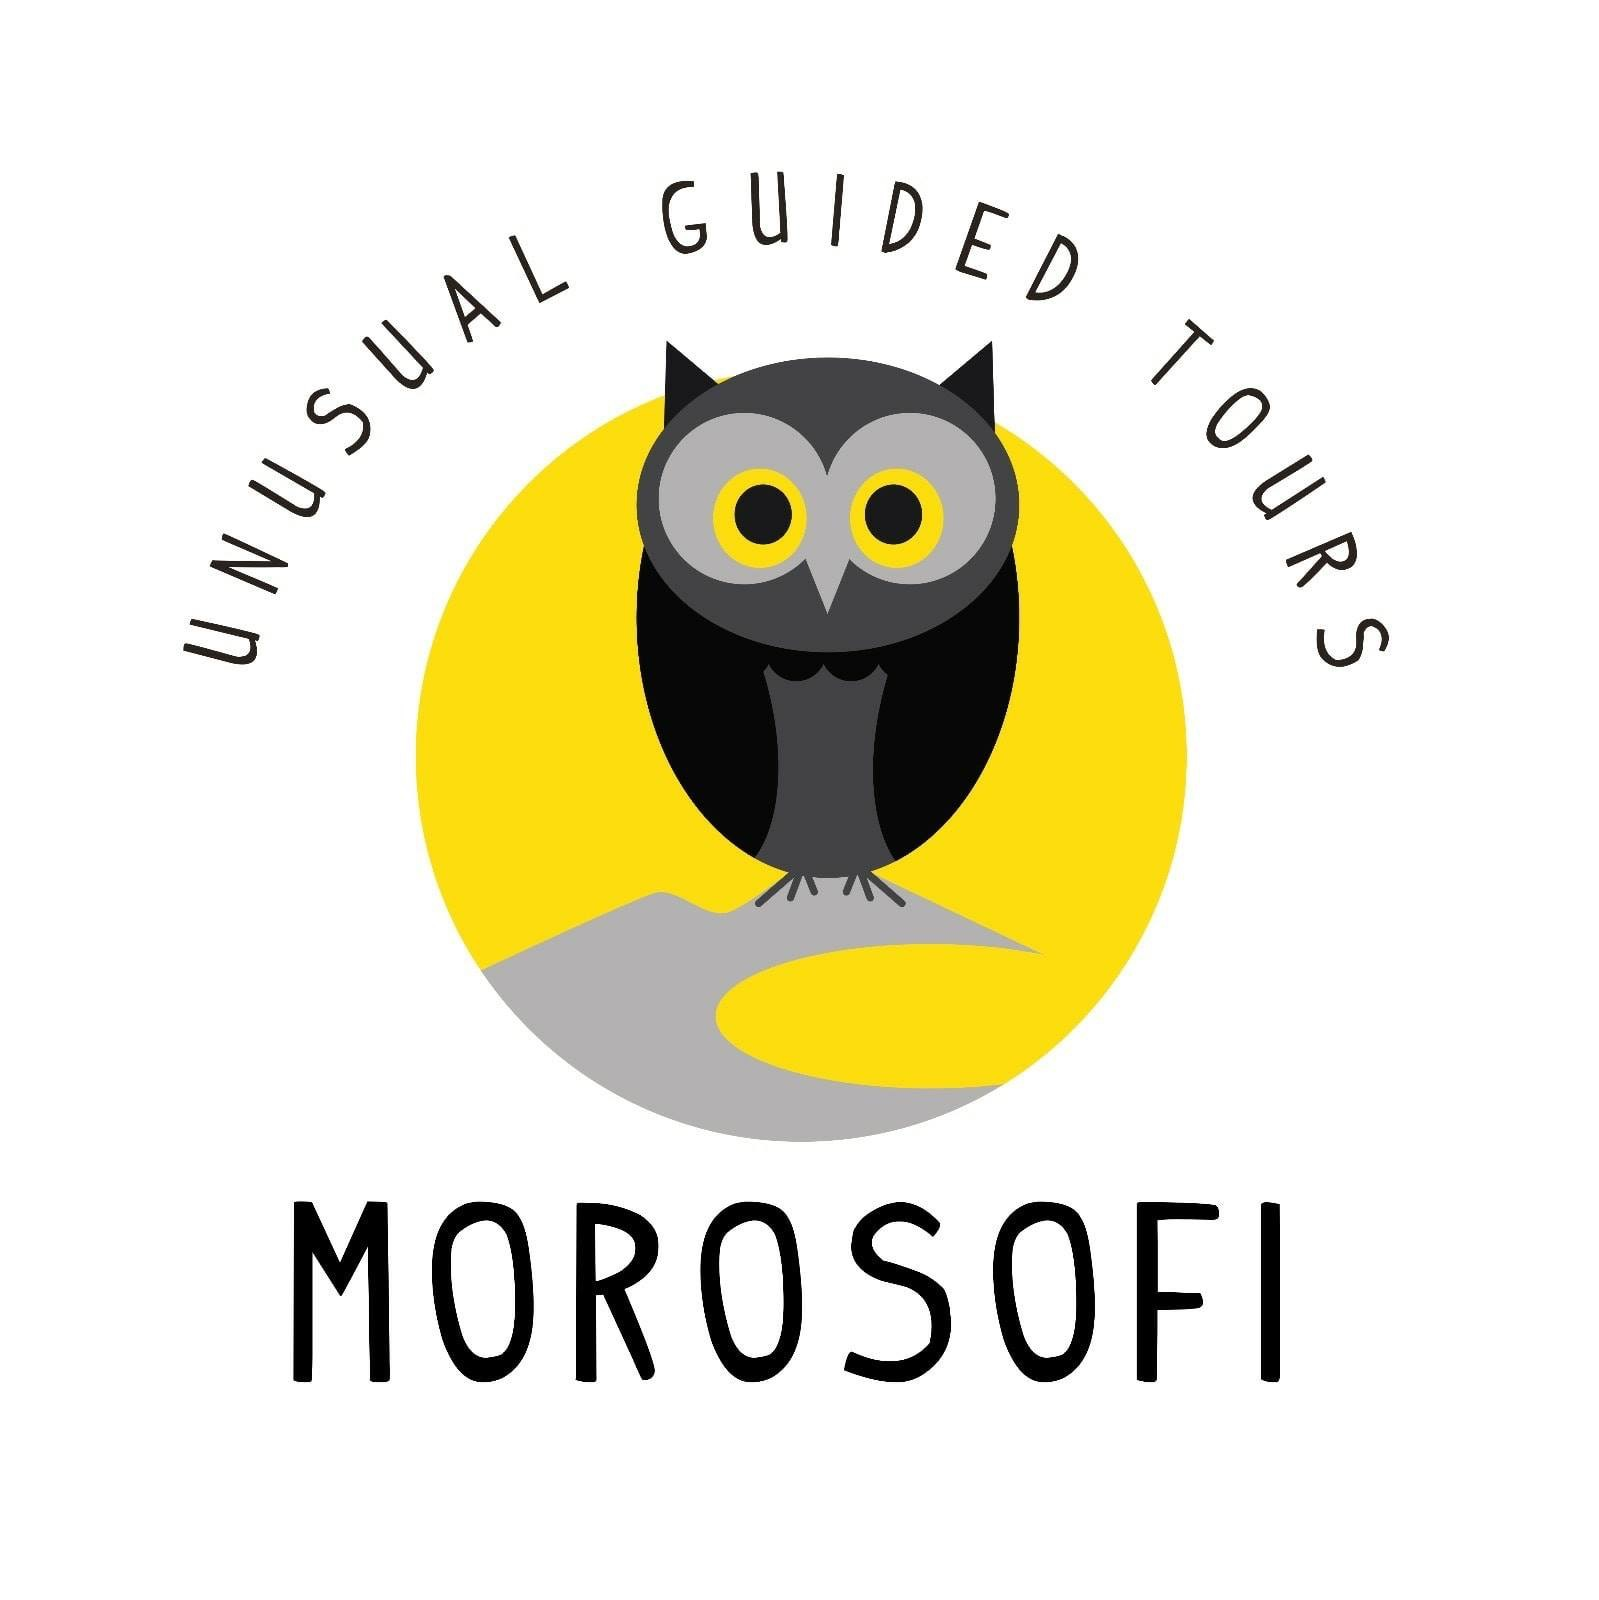 Morosofi Unusual Guided Tours